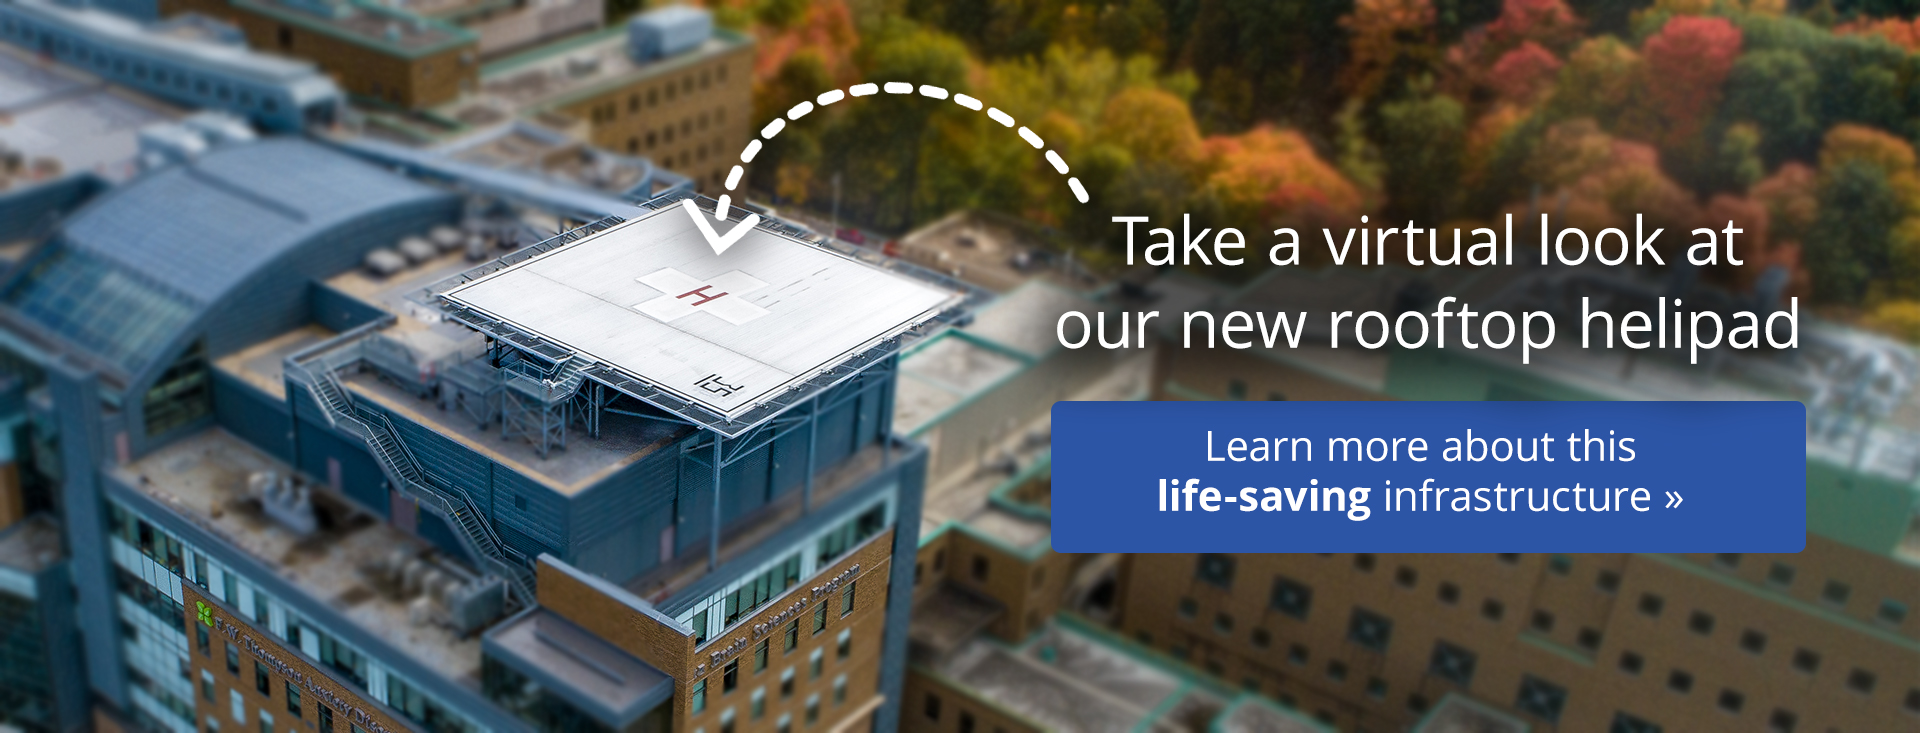 Take a virtual look at our new helipad. Learn more about this life-saving infrastructure